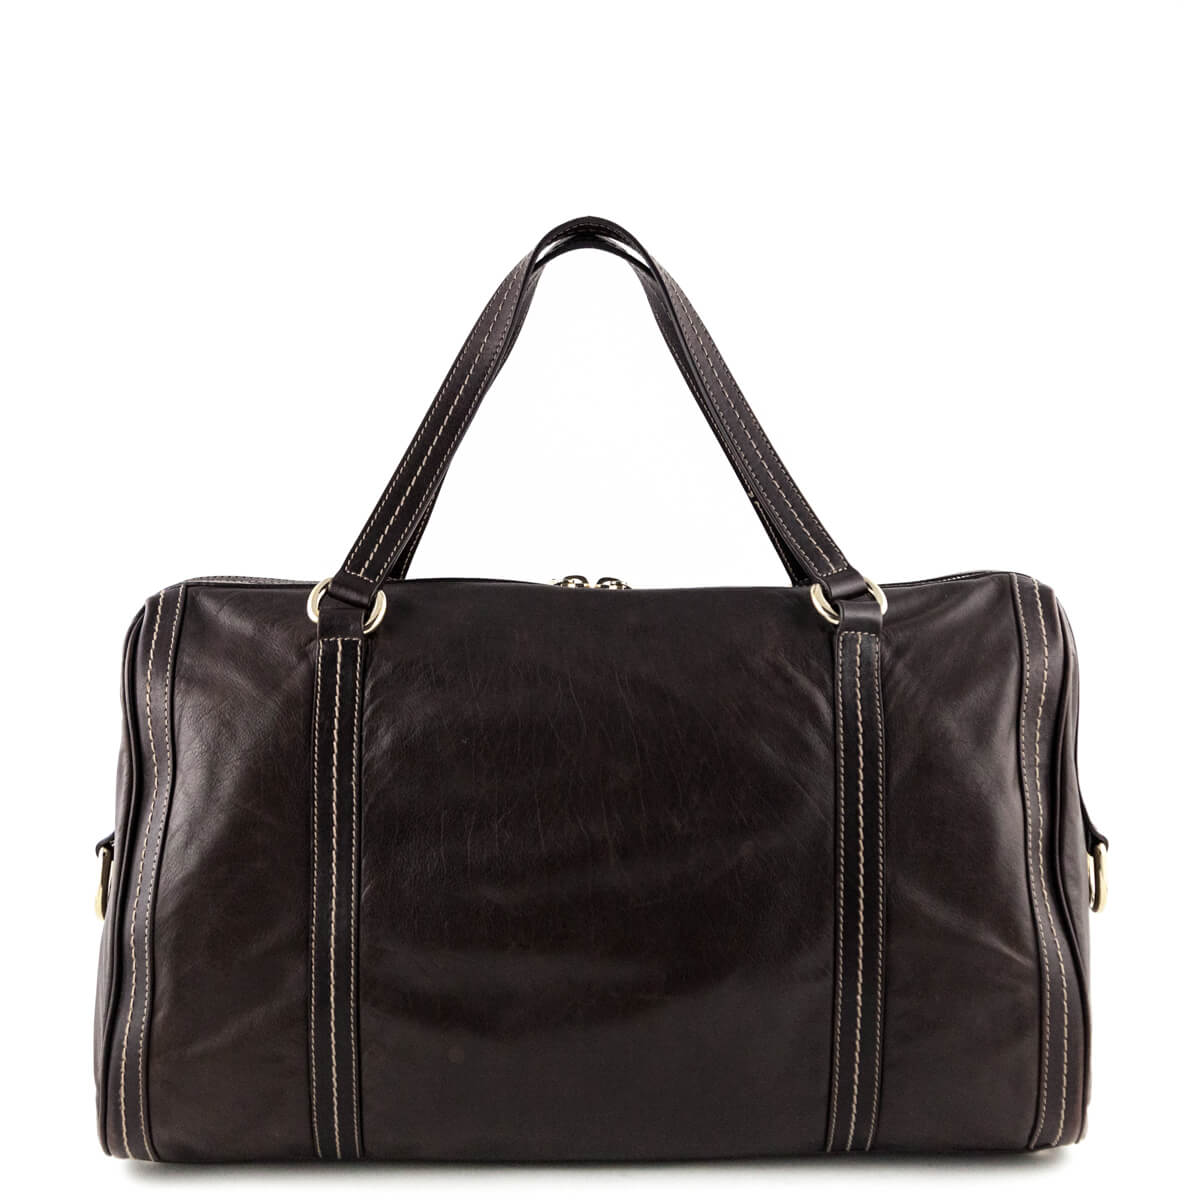 95a9ee35a84 ... Gucci Brown Leather Duffle Hysteria - LOVE that BAG - Preowned  Authentic Designer Handbags ...